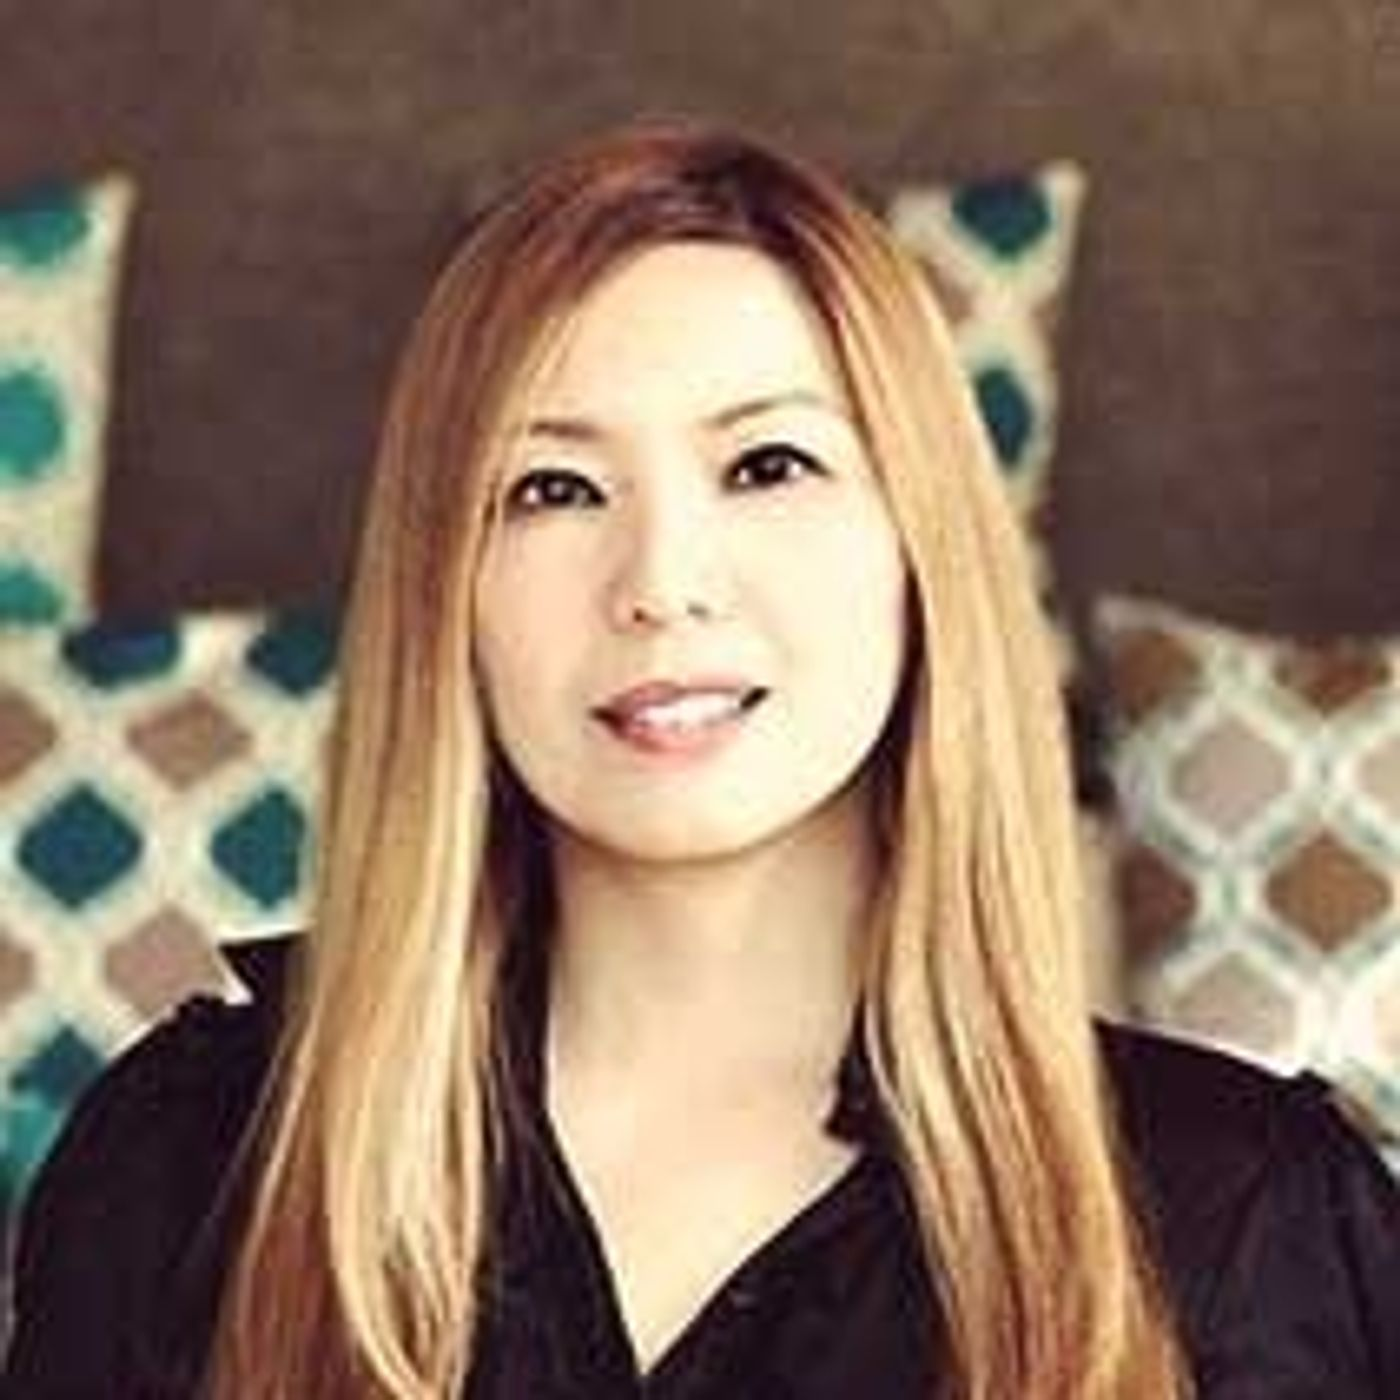 Http Cats, Sketchnoting and Loving the Web with Tomomi Imura